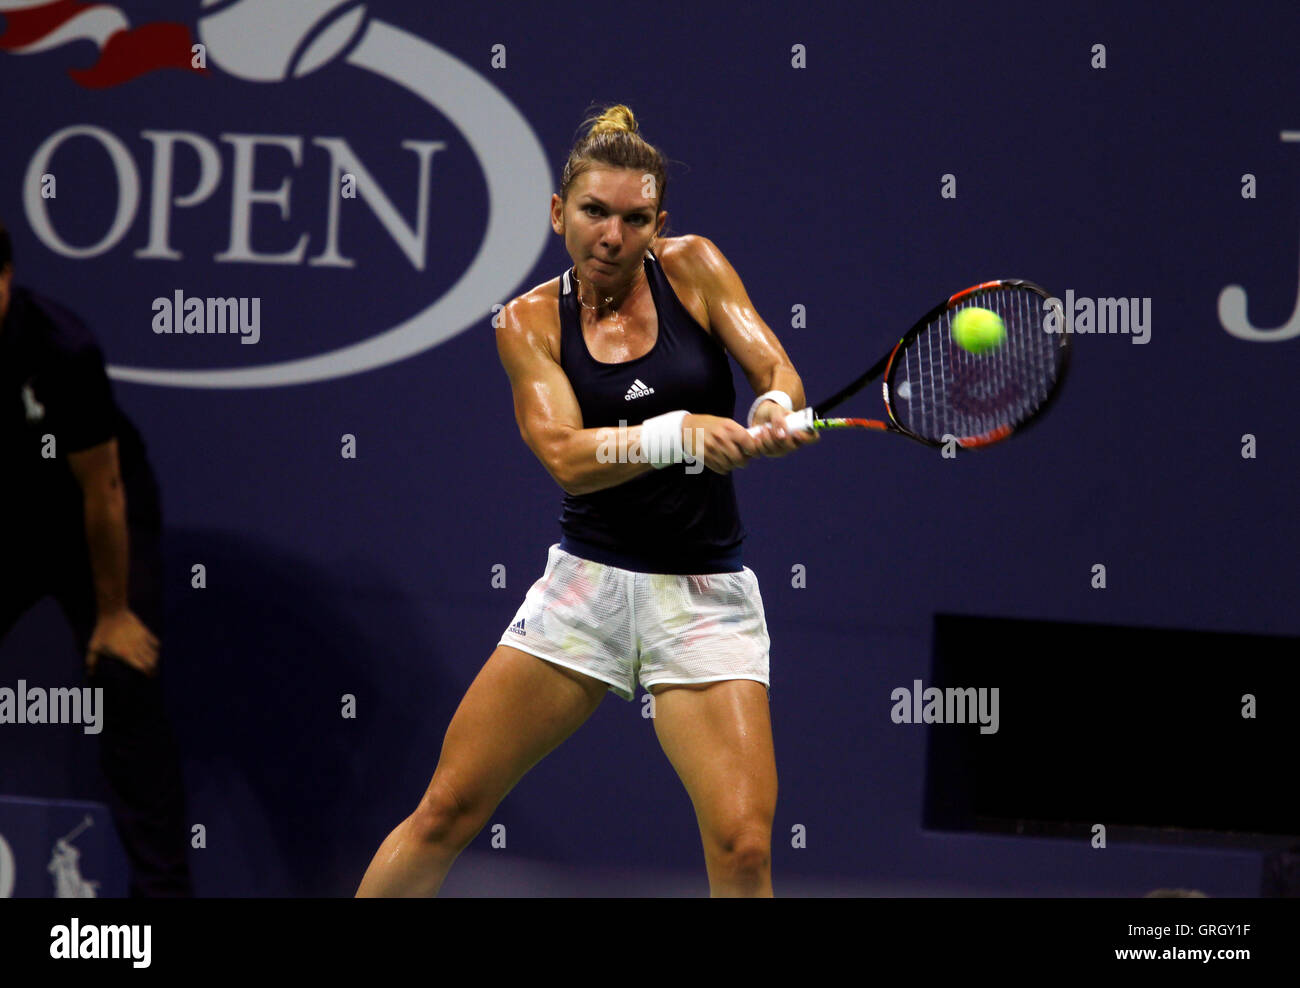 Flushing Meadows, New York, USA. 7th September, 2016. Simona Halep of Romania reacts to a point during her quarter - Stock Image